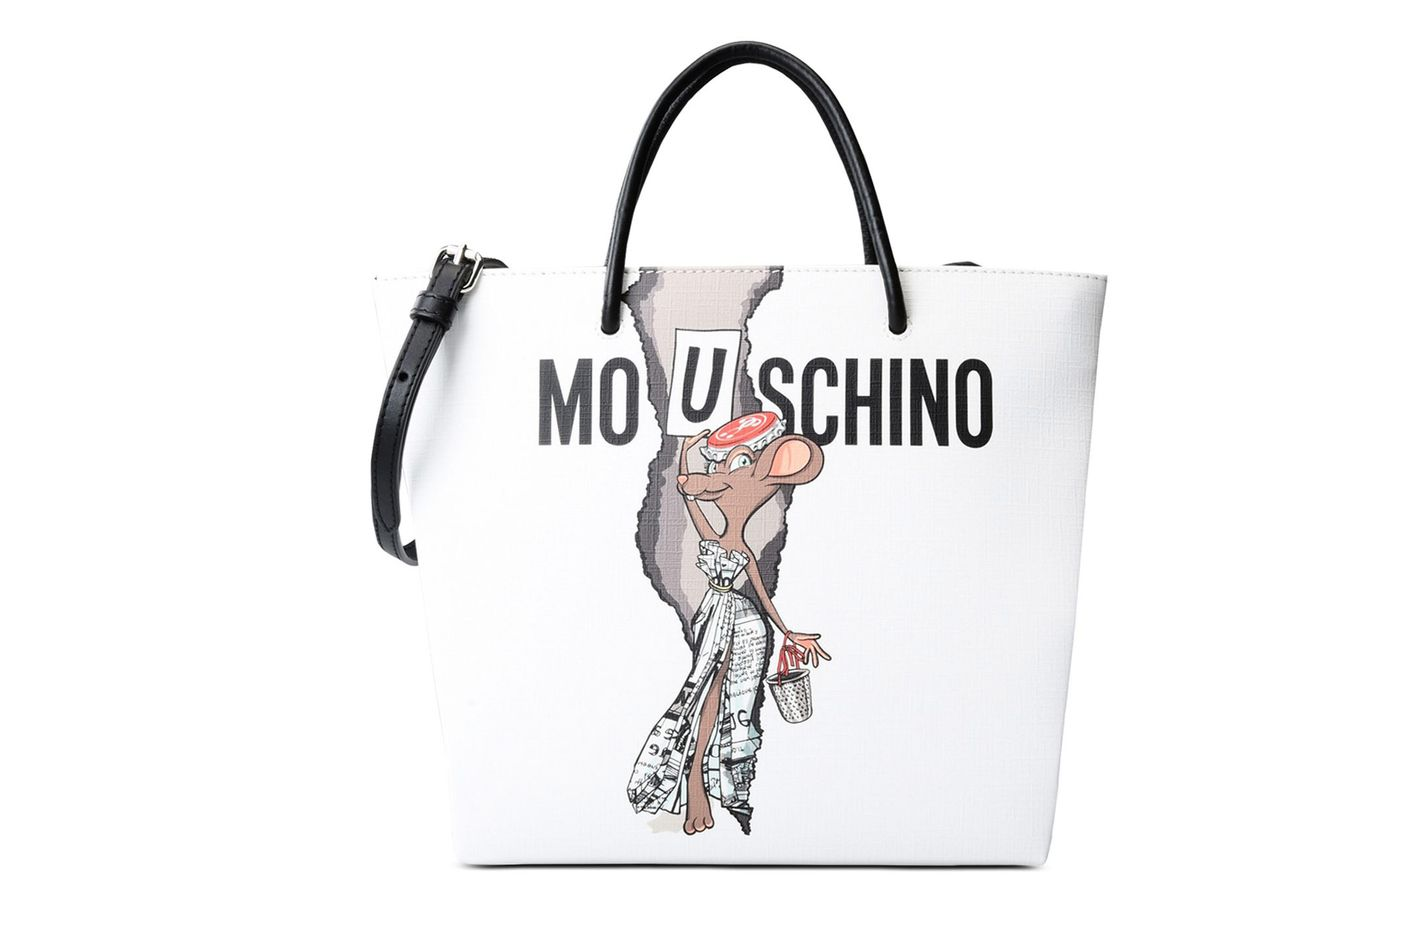 c569d0388a Moschino capsule collection shopping bag. ""